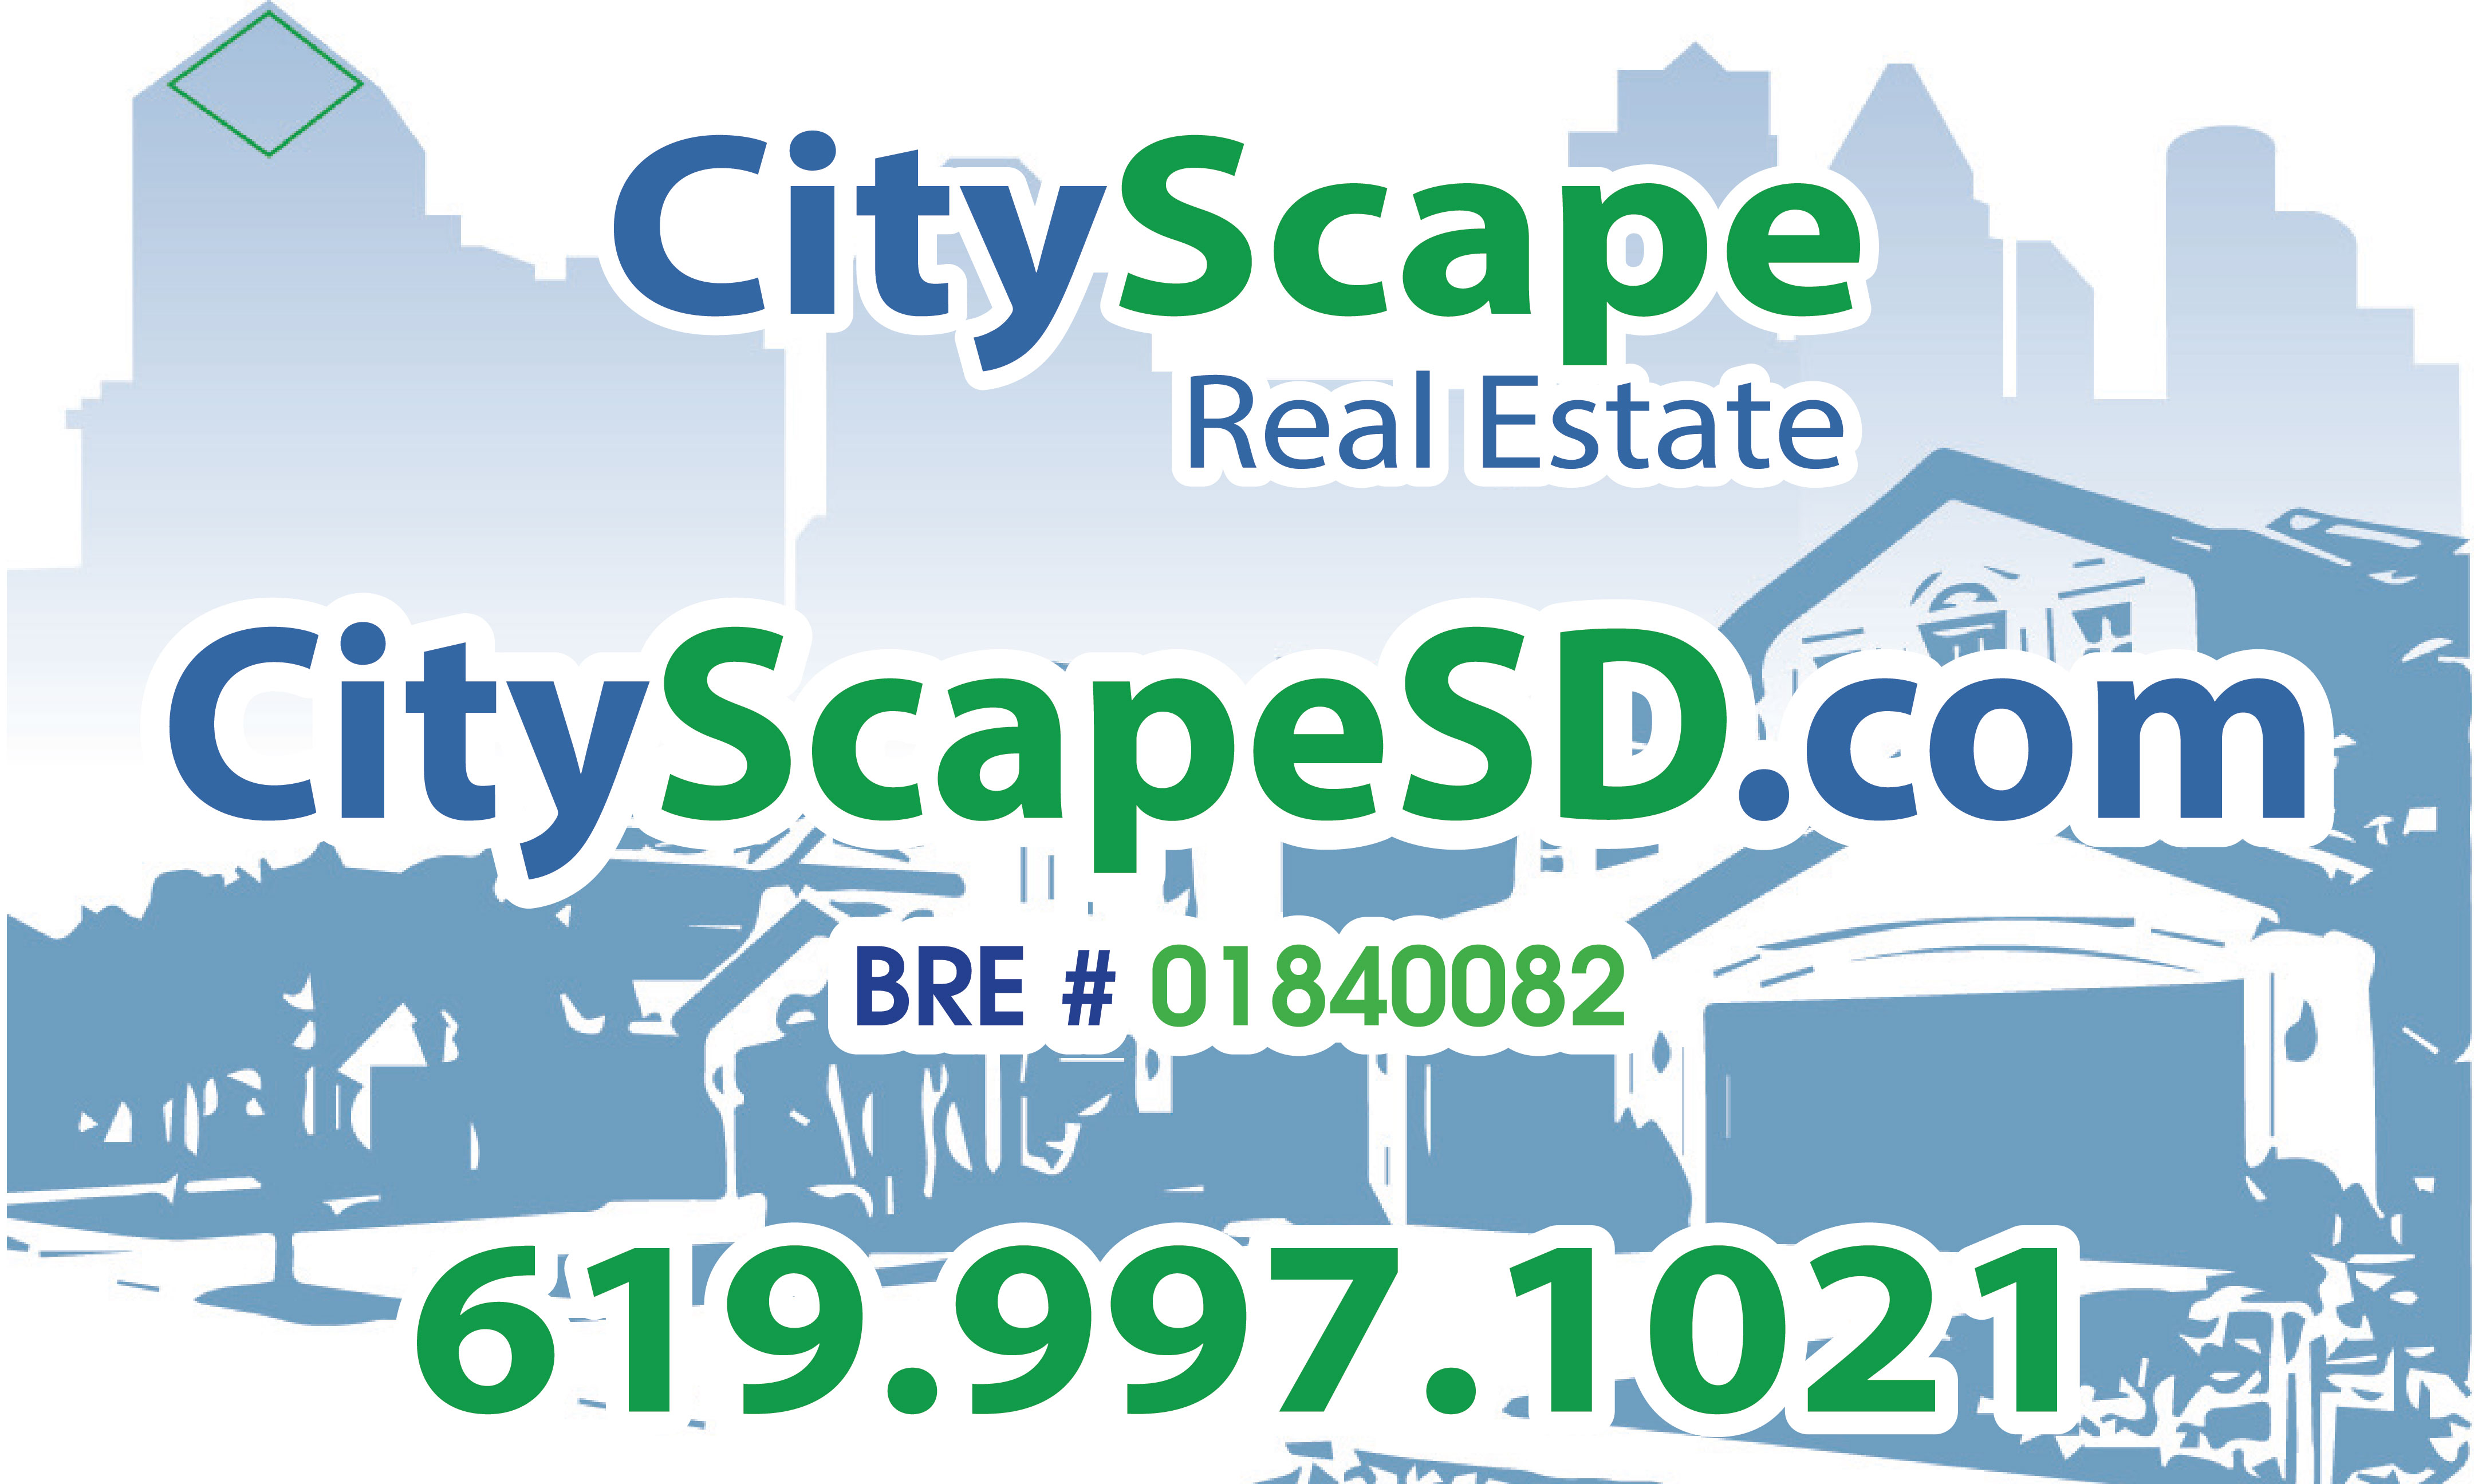 City Scape Real Estate